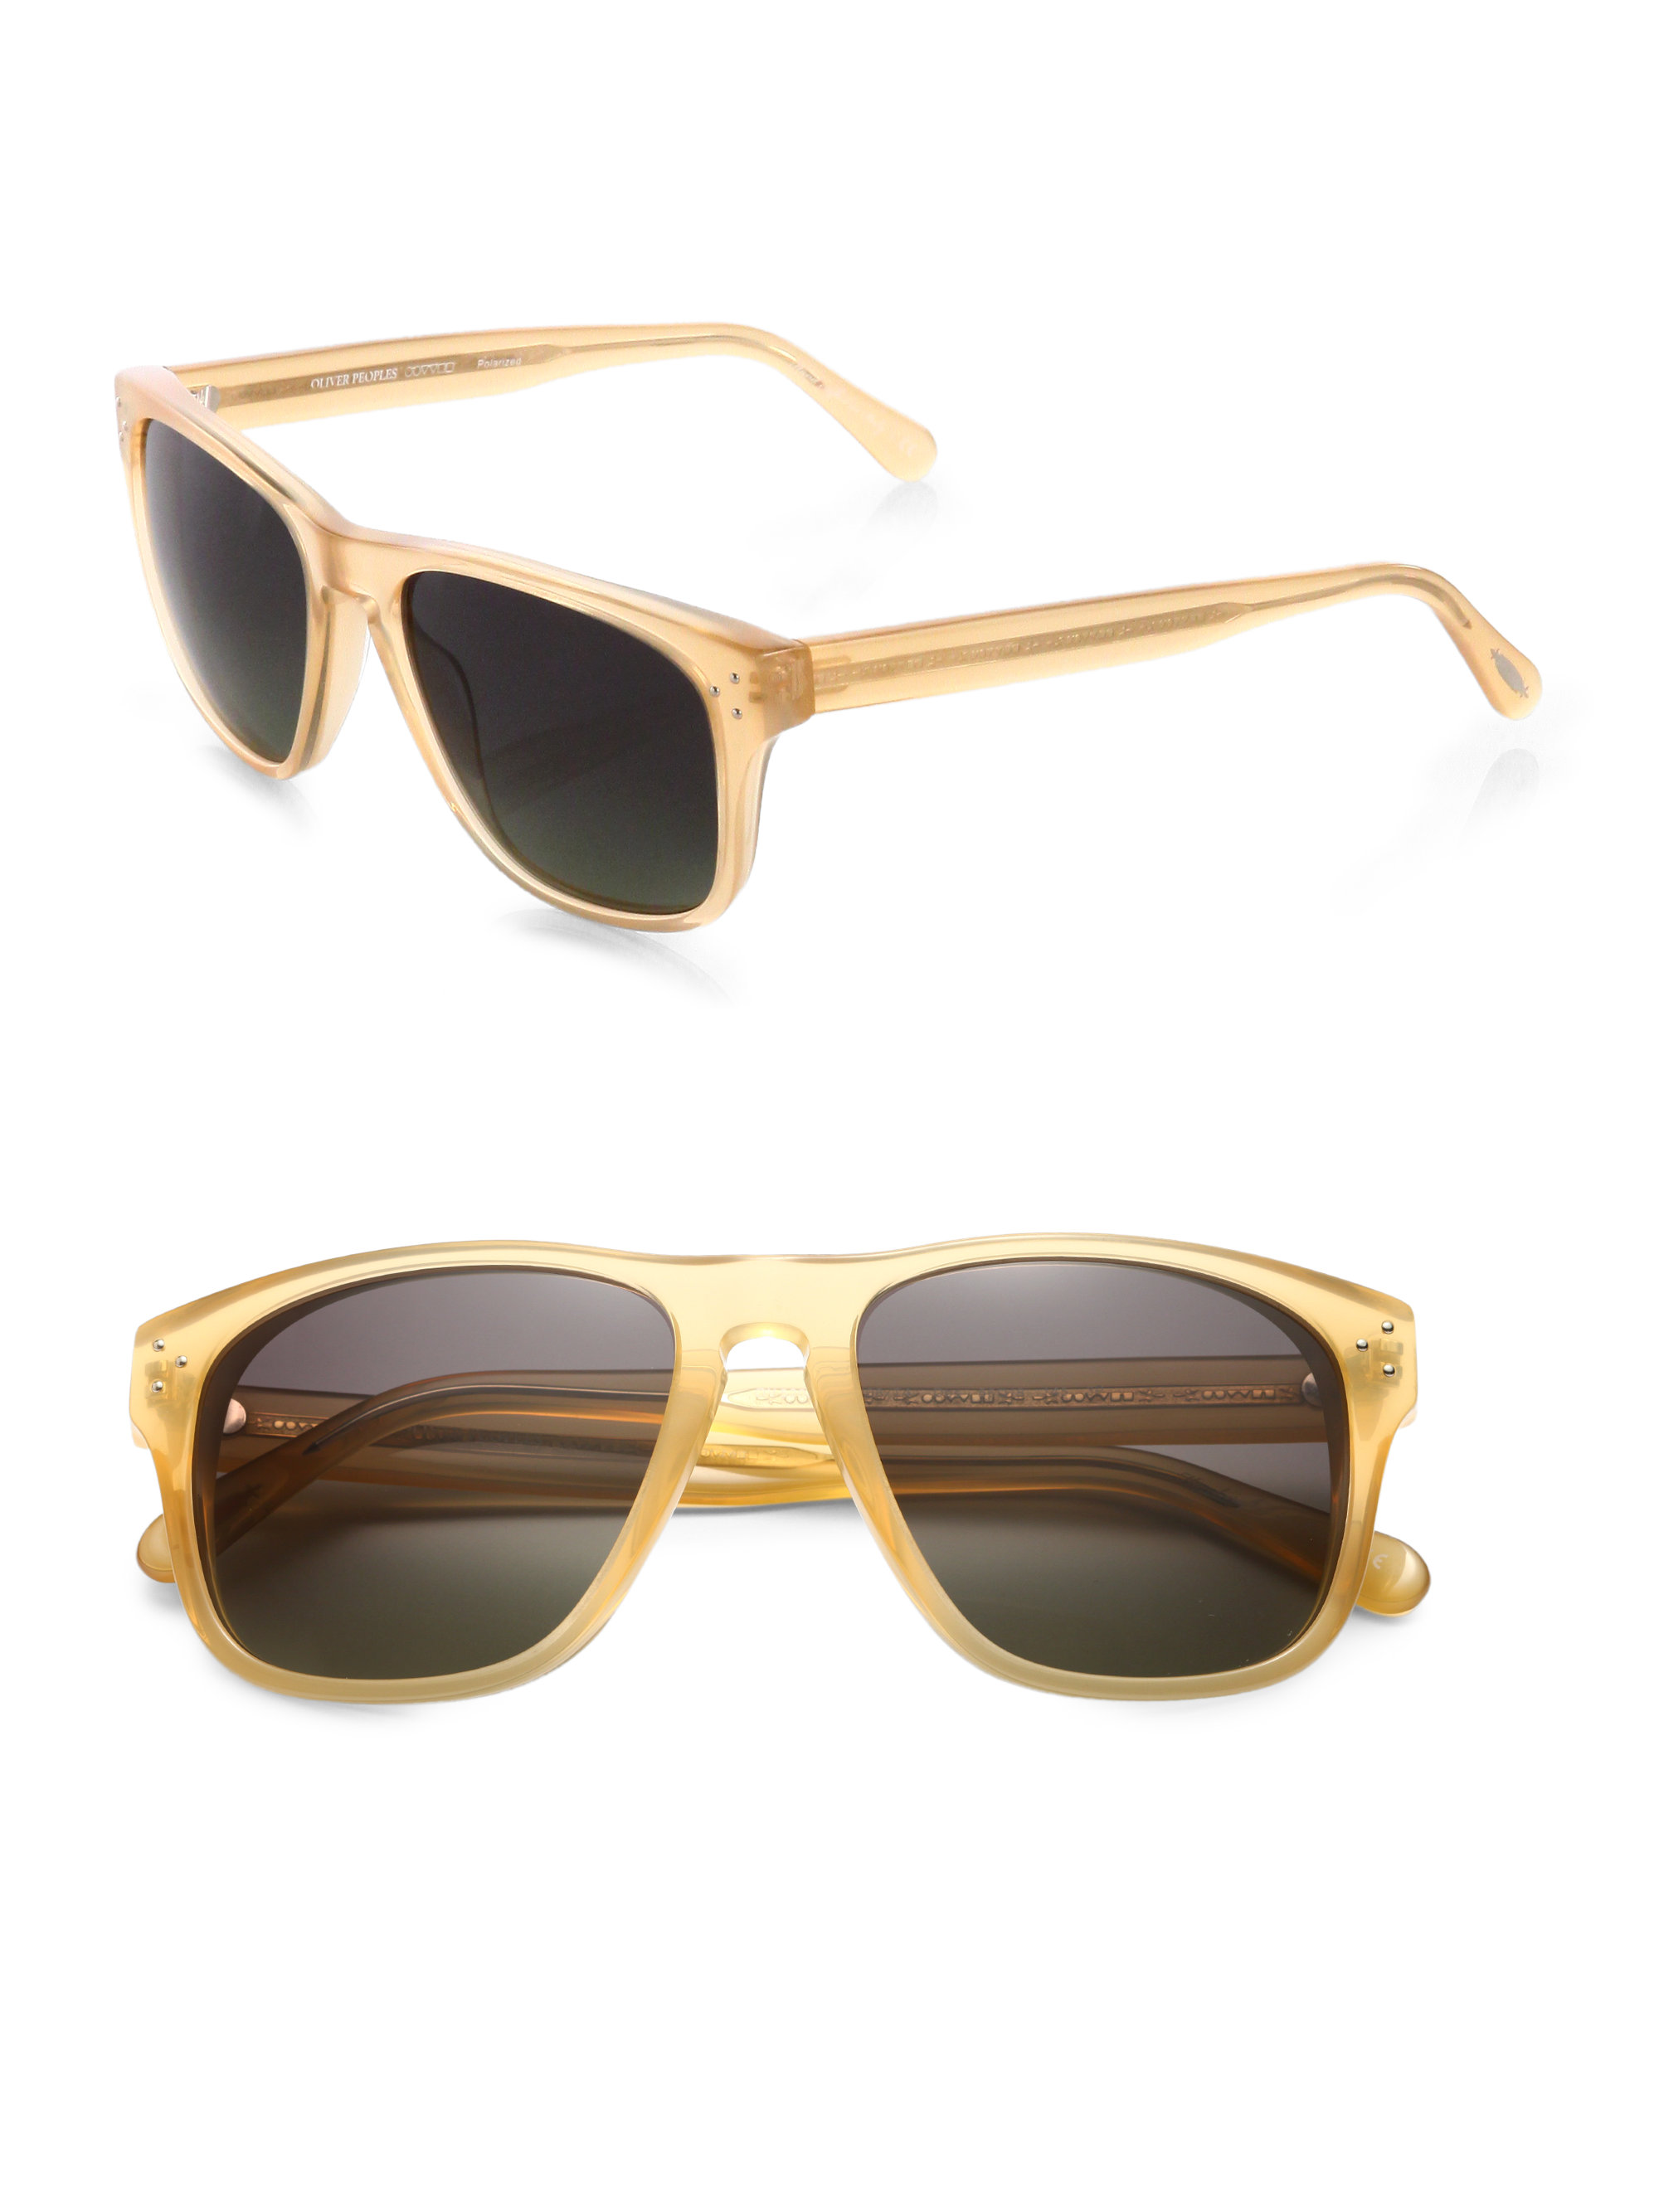 0112ded55c4 Oliver Peoples Oversized Acetate Sunglasses in Natural for Men - Lyst